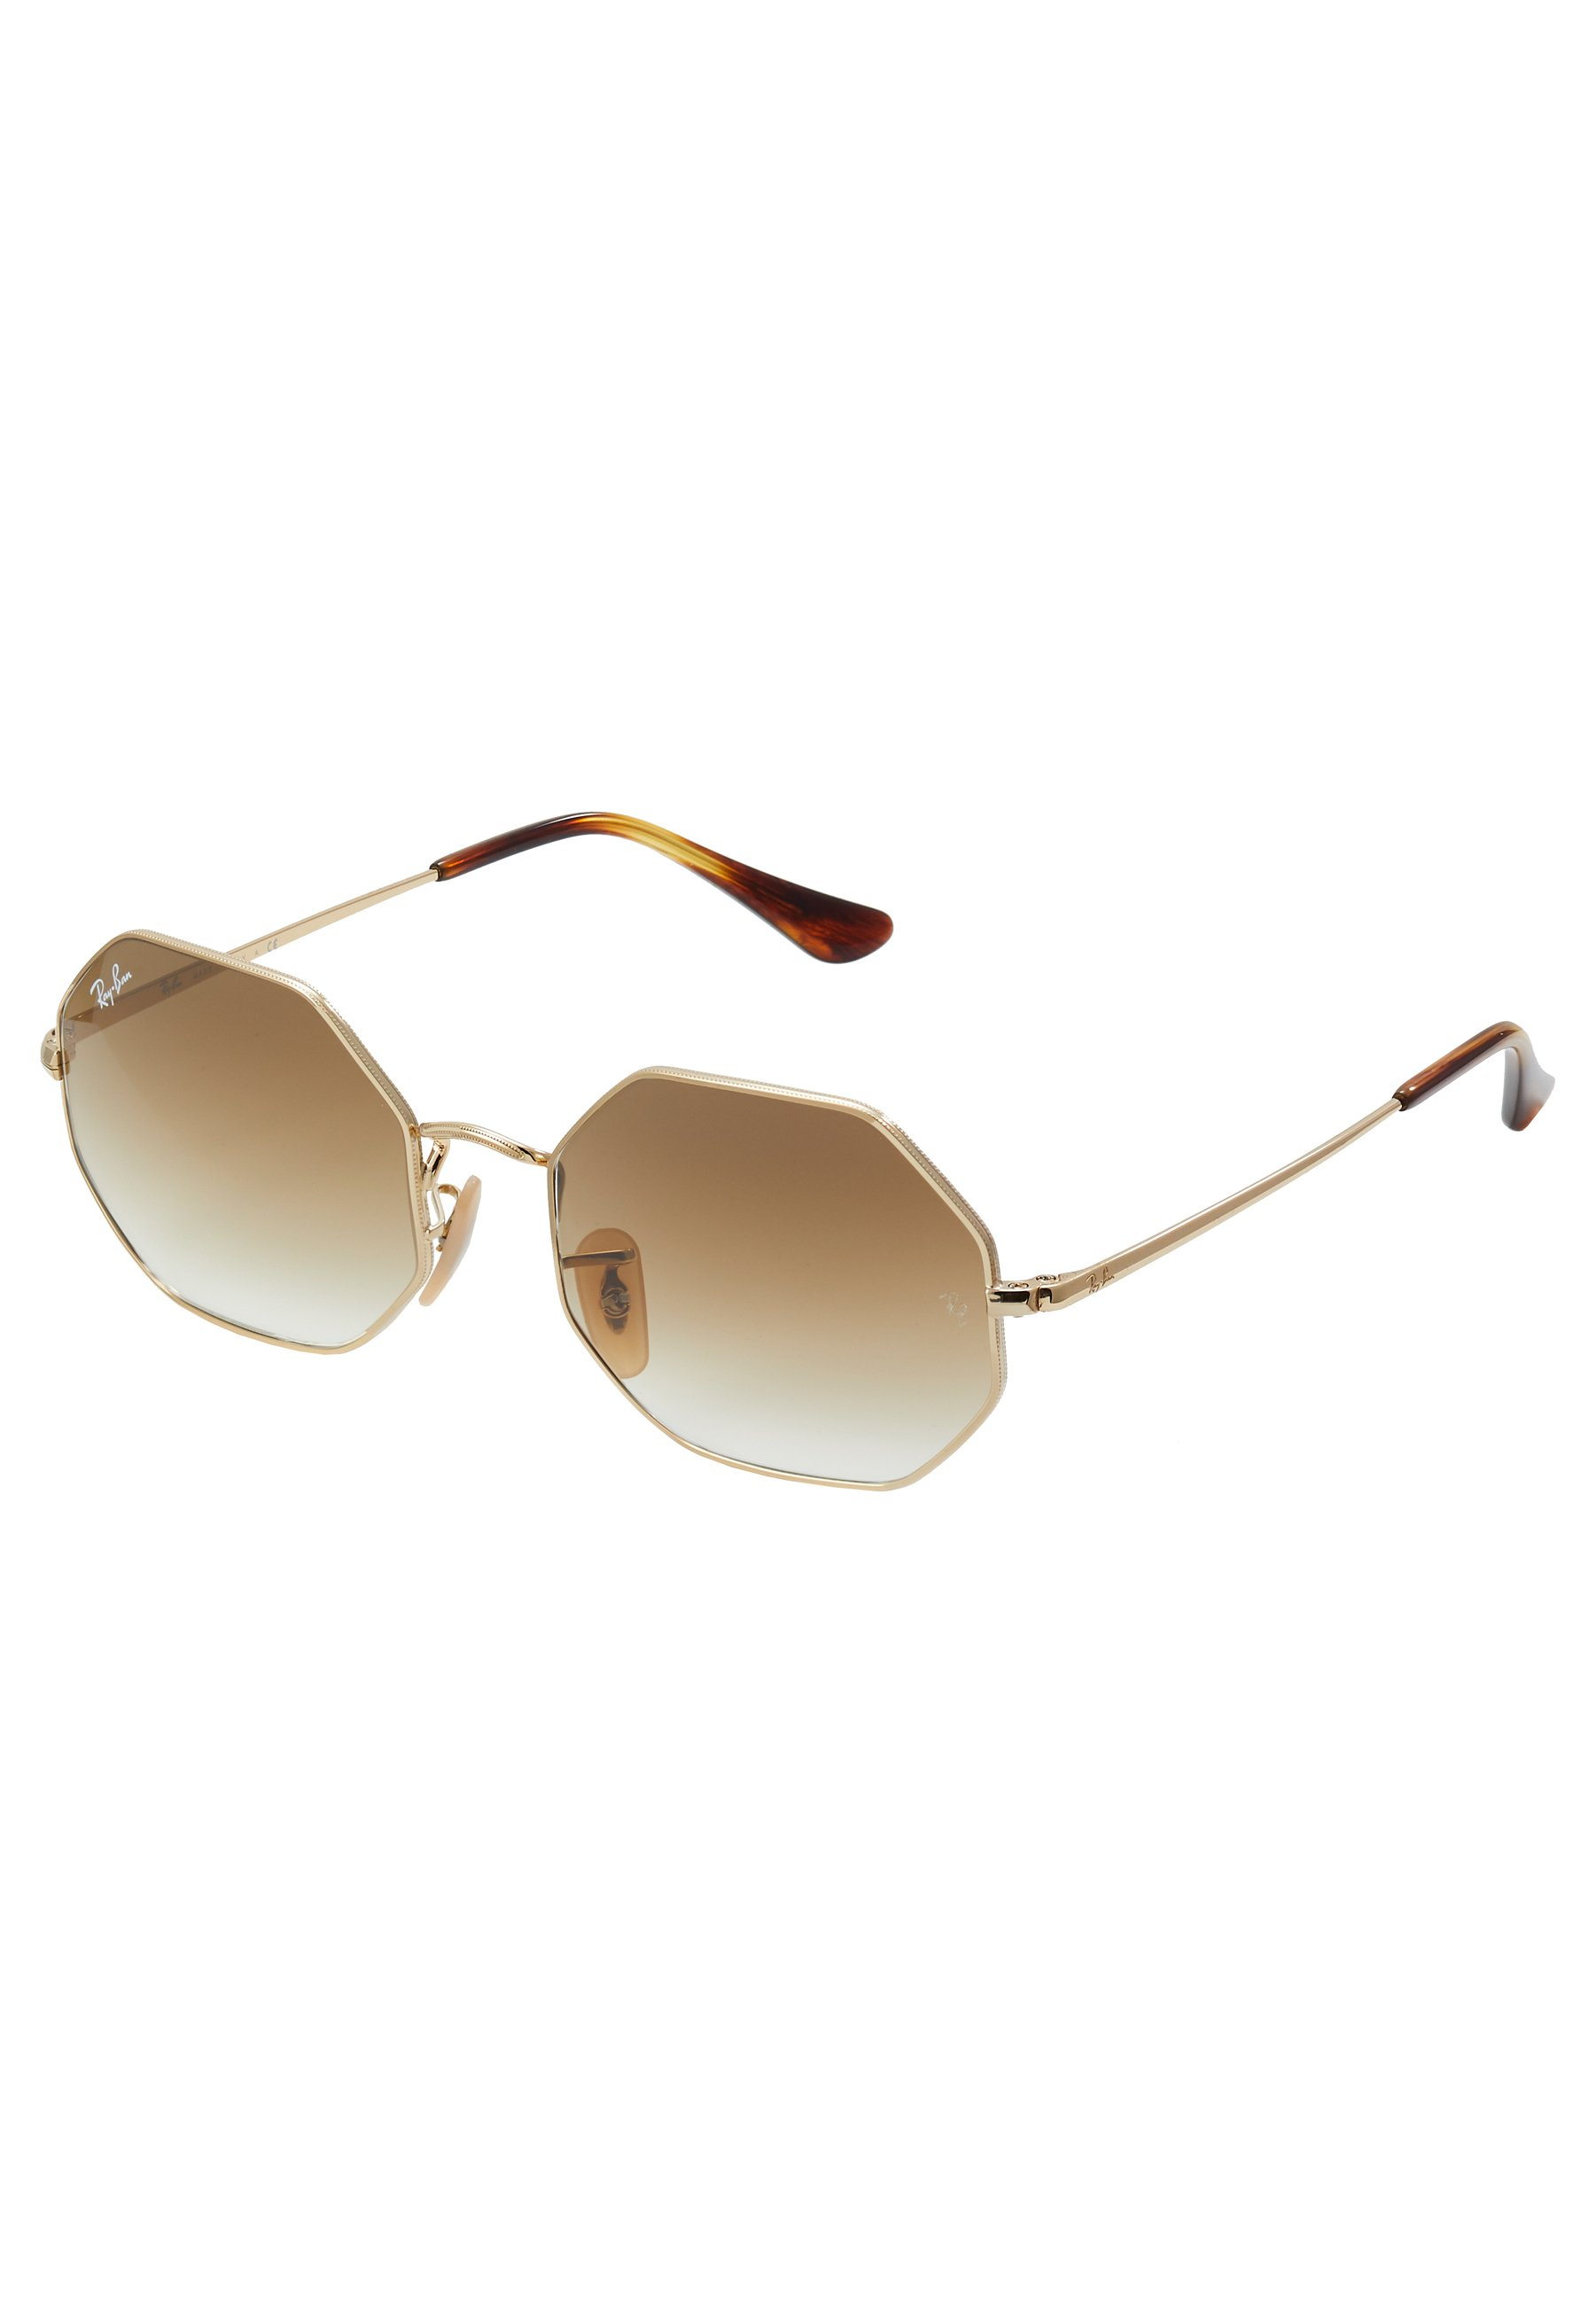 Ray-Ban Solbriller - gold-coloured/gull NIMpEgEVuJn9h27